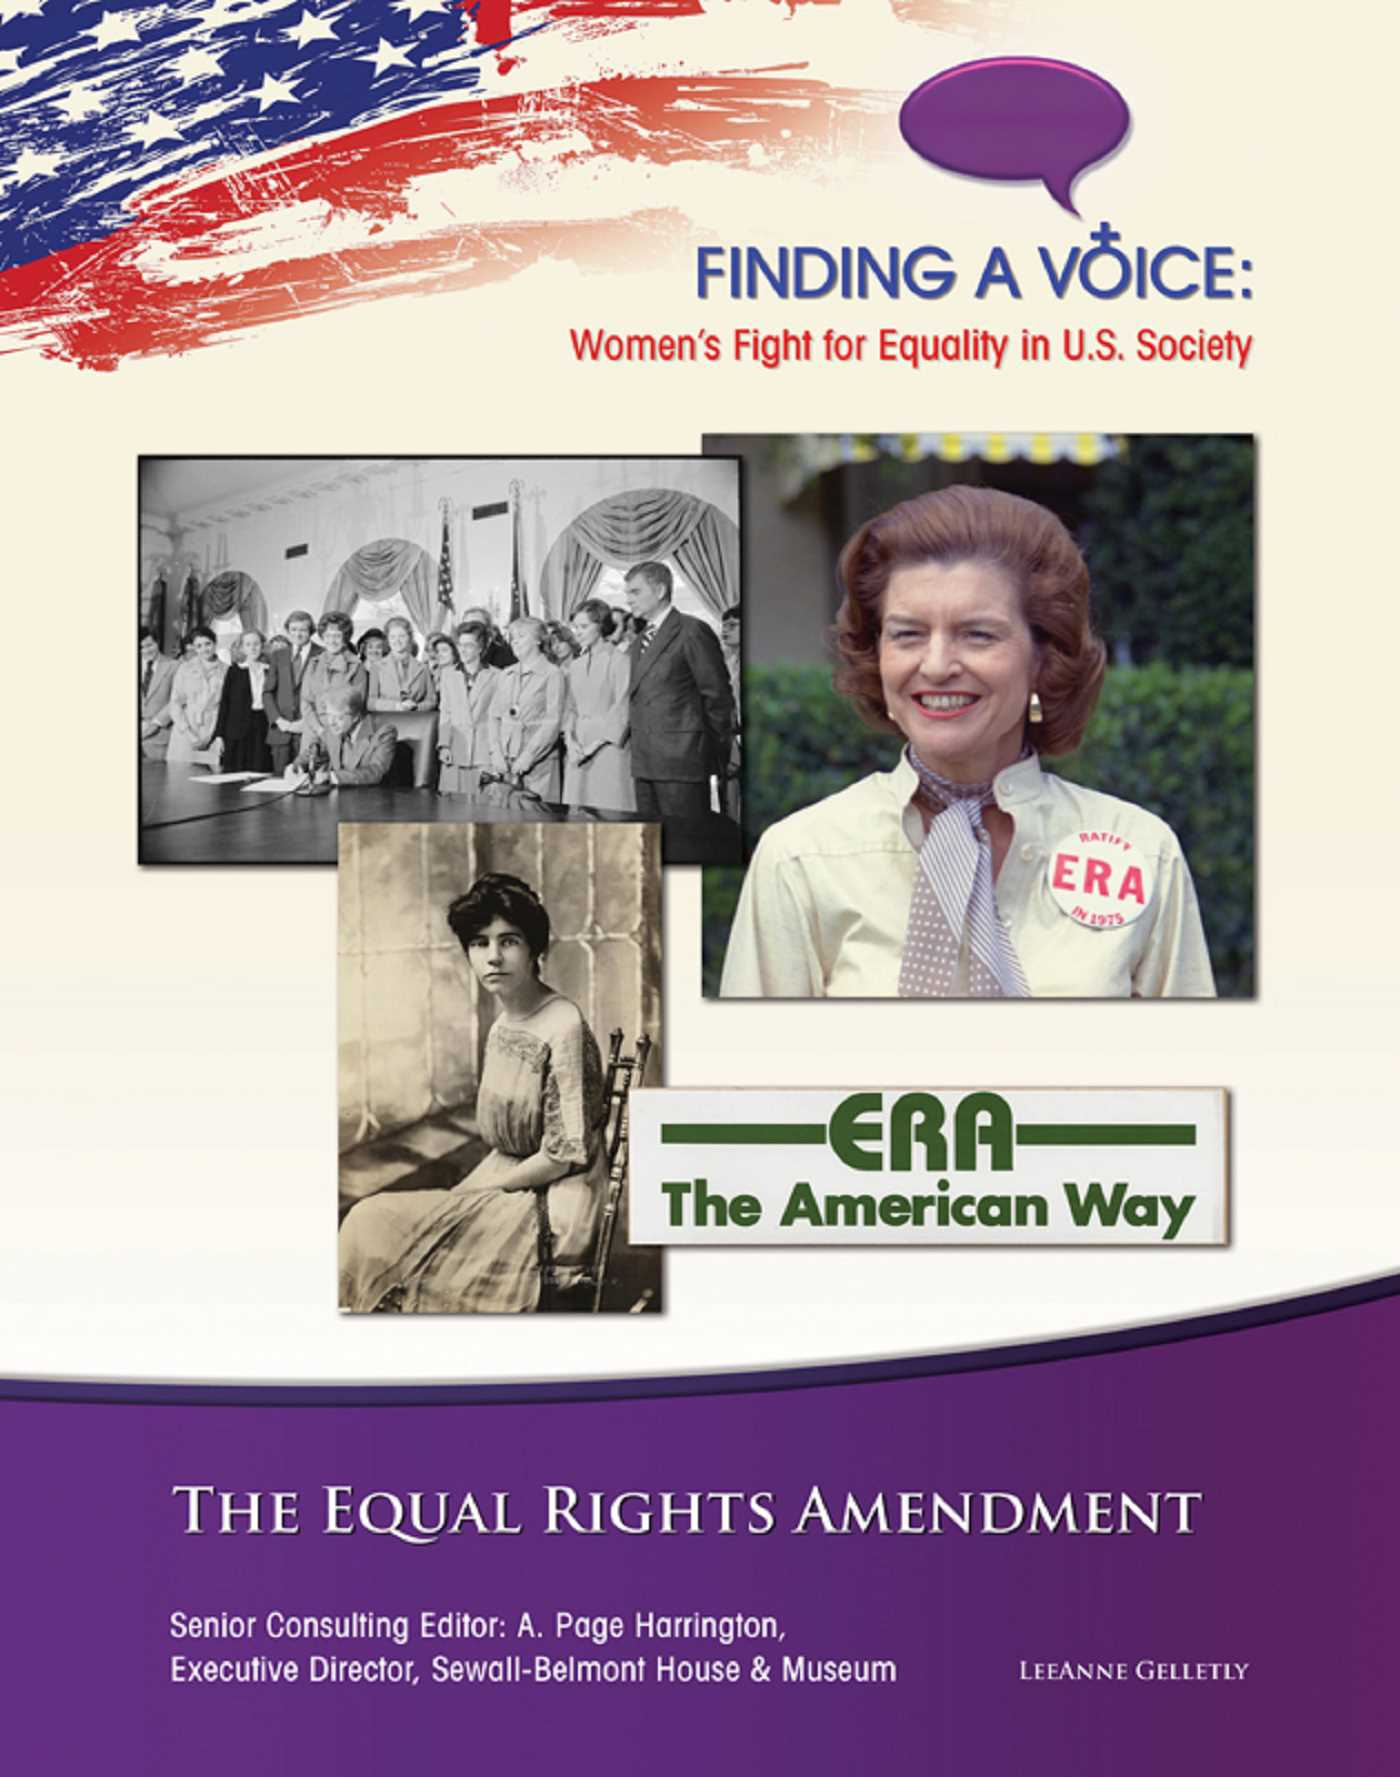 equal rights amendment Definition of equal rights amendment in us english - a proposed amendment to the us constitution stating that civil rights may not be denied on the basis of one's sex.